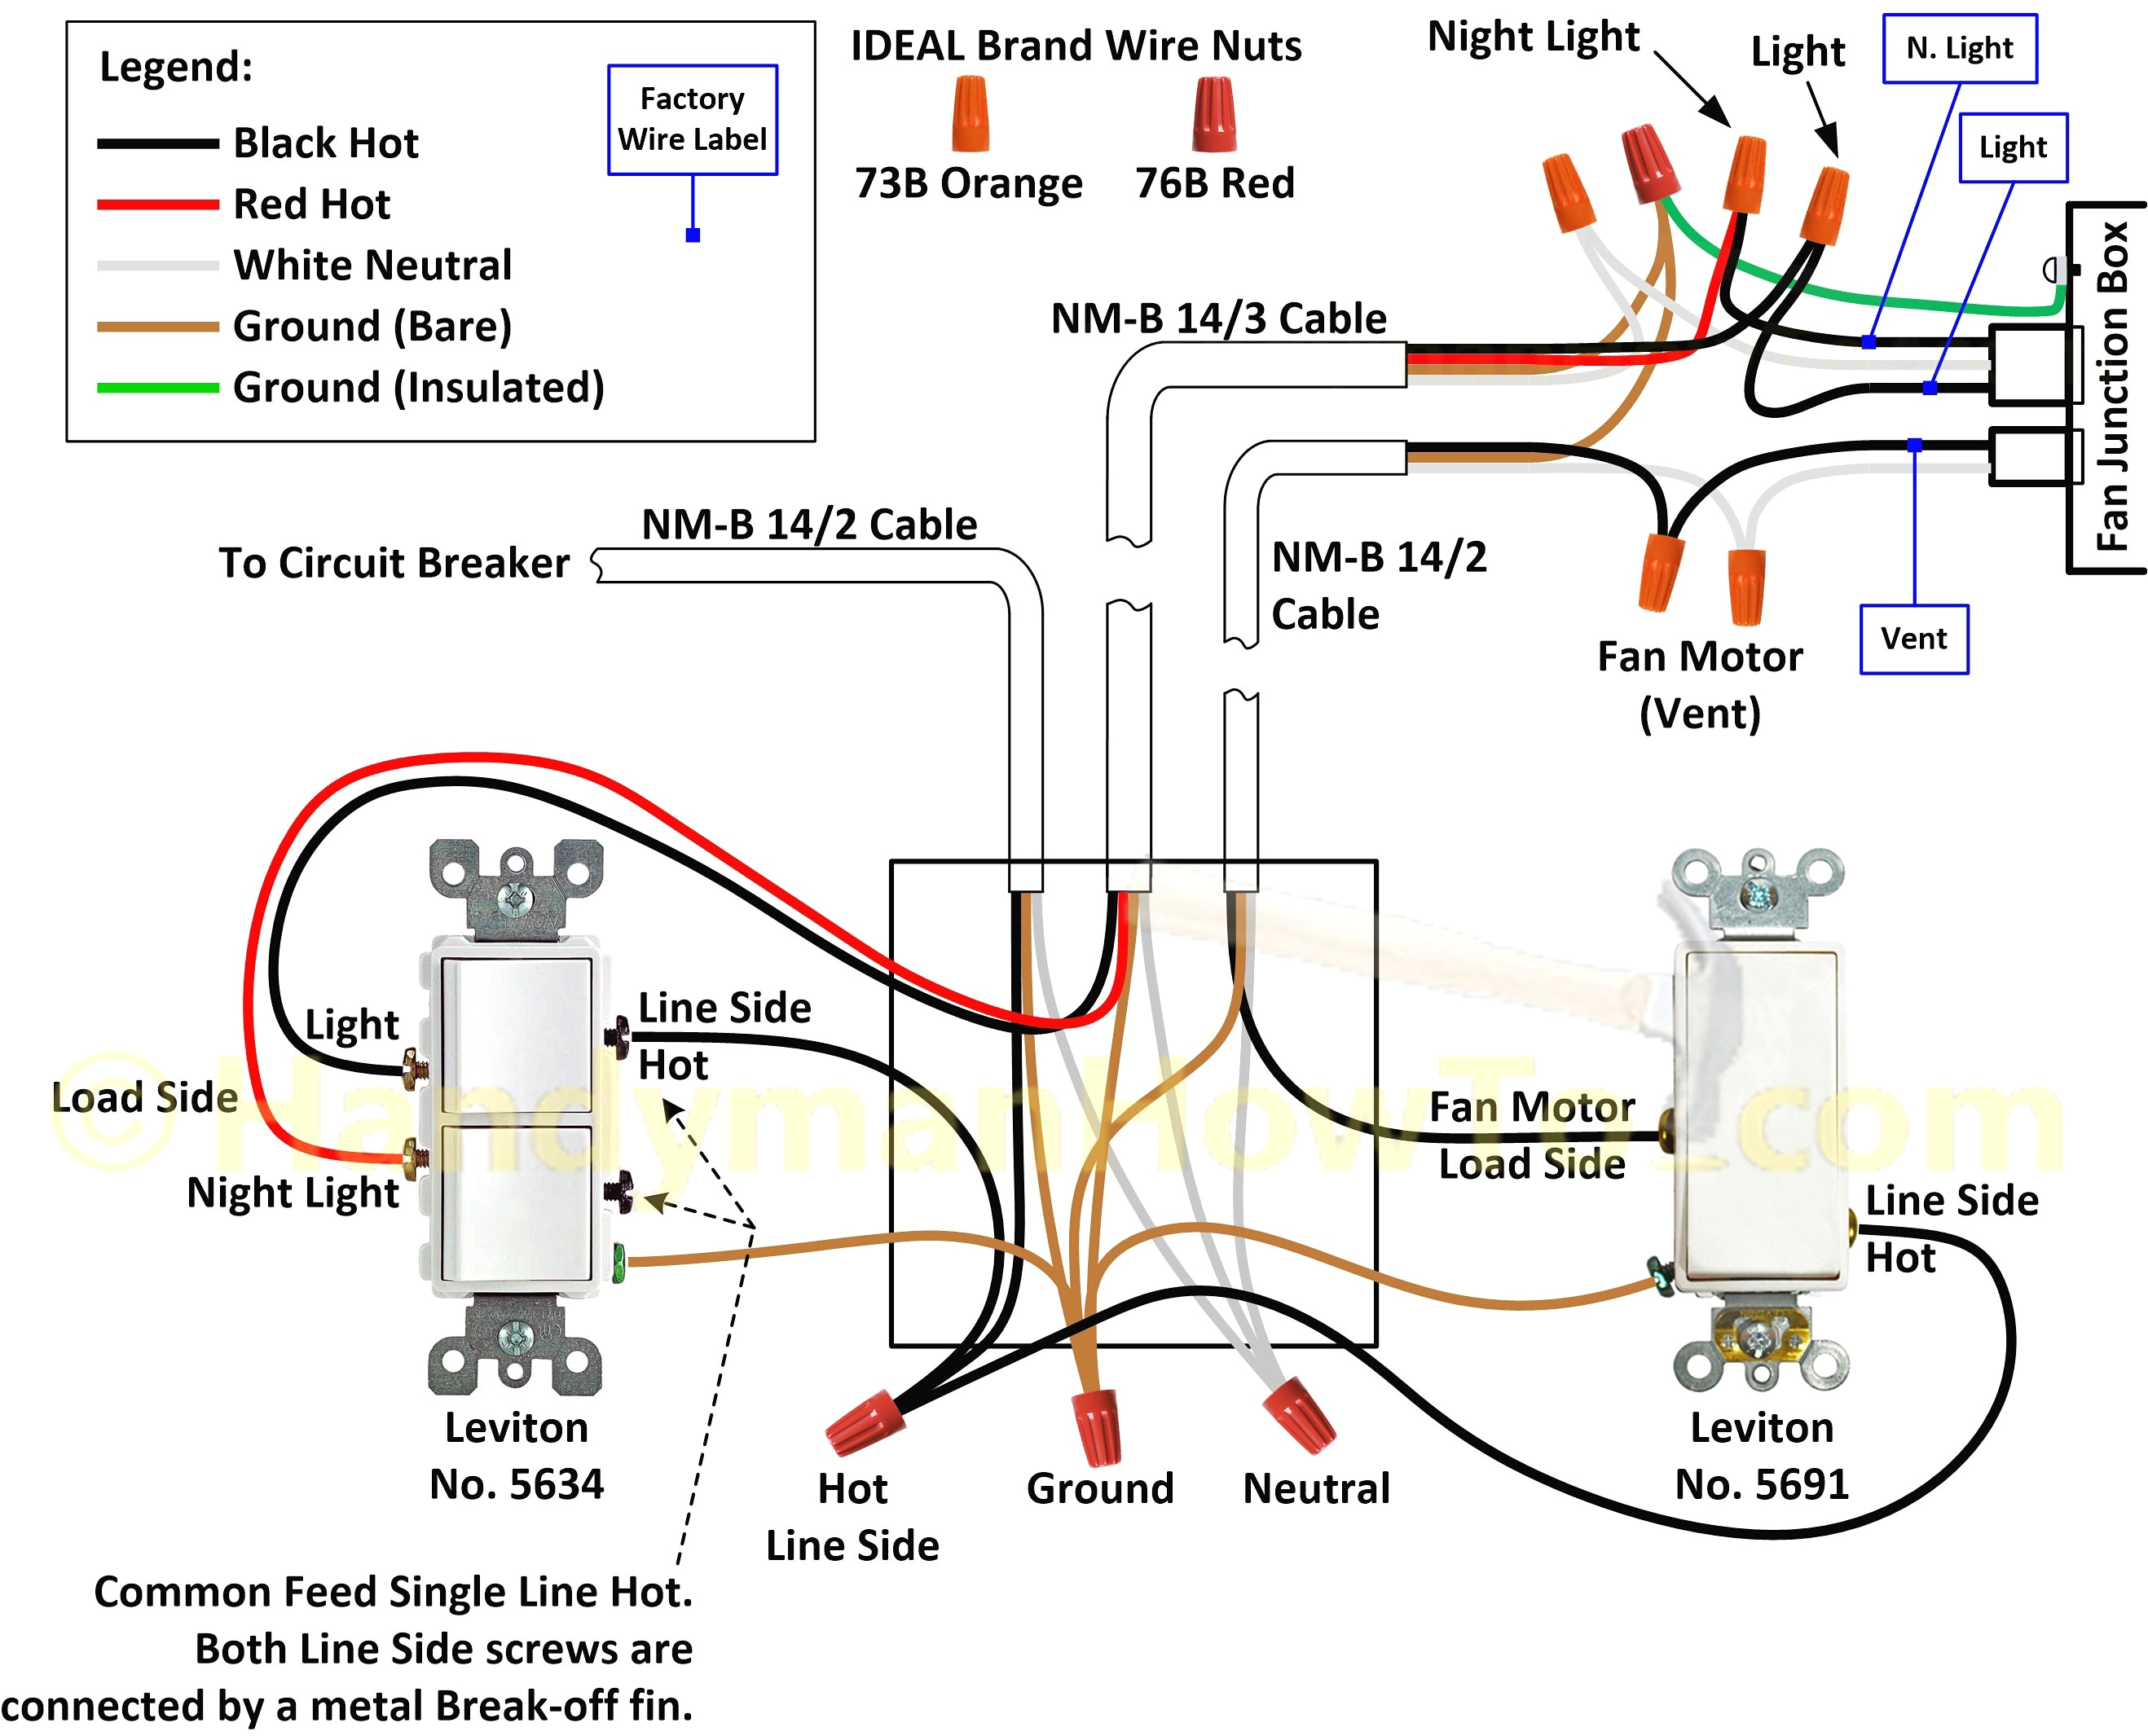 dc ceiling fan wiring diagram for smart relay new single switch que carlplant at 5b9f0c5200790 jpg